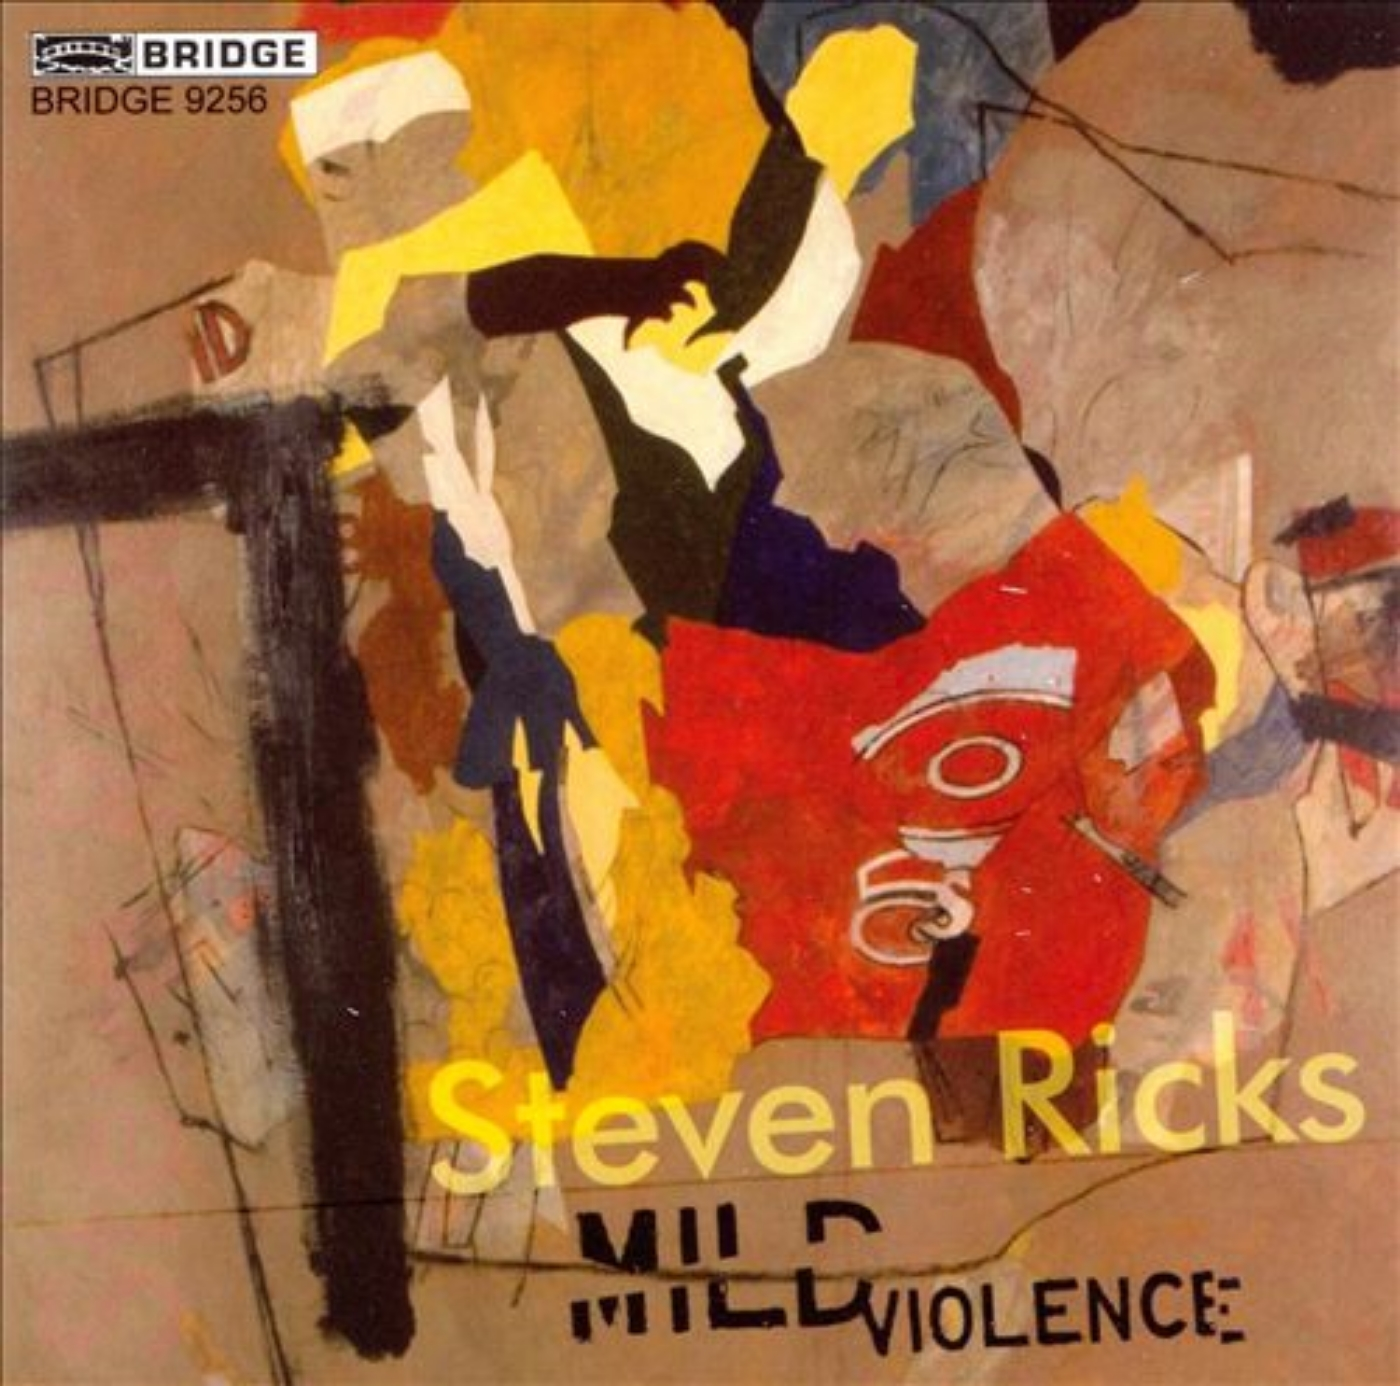 Mild Violence - My FIRST CD release, Mild Violence was a memorable milestone for me. This disc includes some great performances by musicians and friends I really admire, who have helped (and continue to help) me on my way, including flutist Carlton Vickers, the New York New Music Ensemble, violinist Curtis Macomber, saxophonist John Sampen, Talujon Percussion, and Talujon co-founder Dominic Donato.